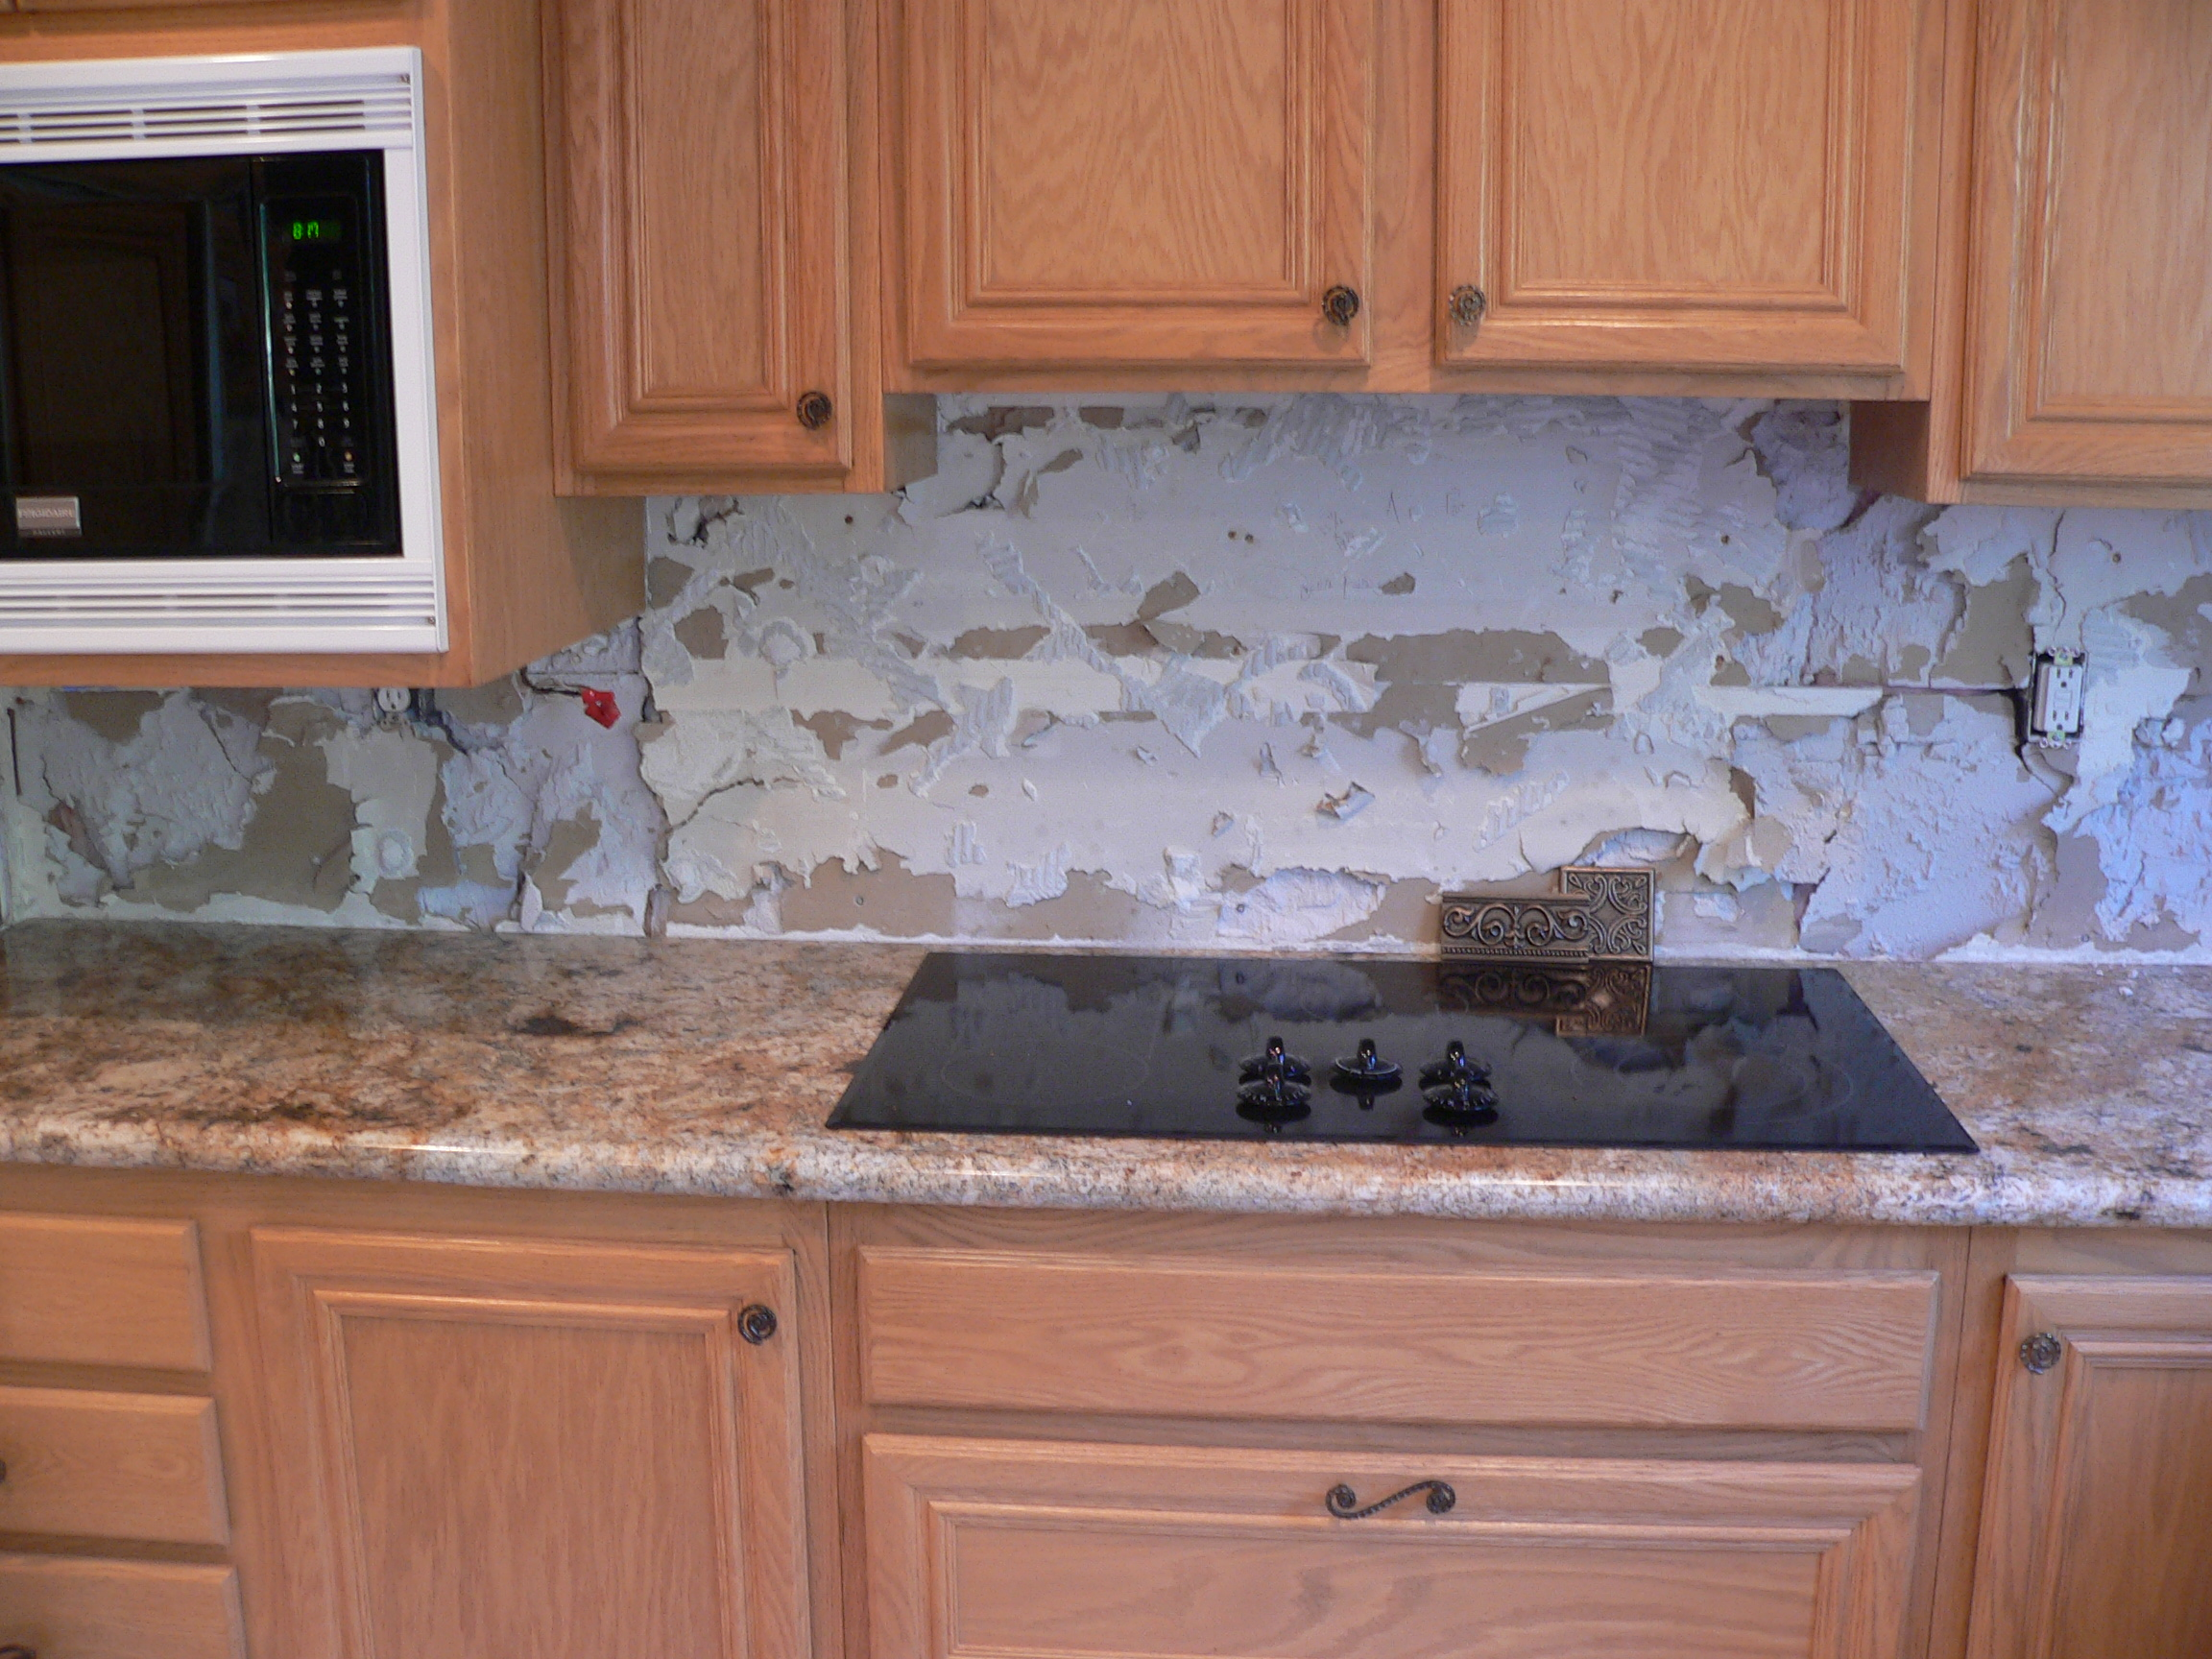 How To Install A Tile Backsplash On Kitchen Drywall Thumbnail Apps 2304x1728